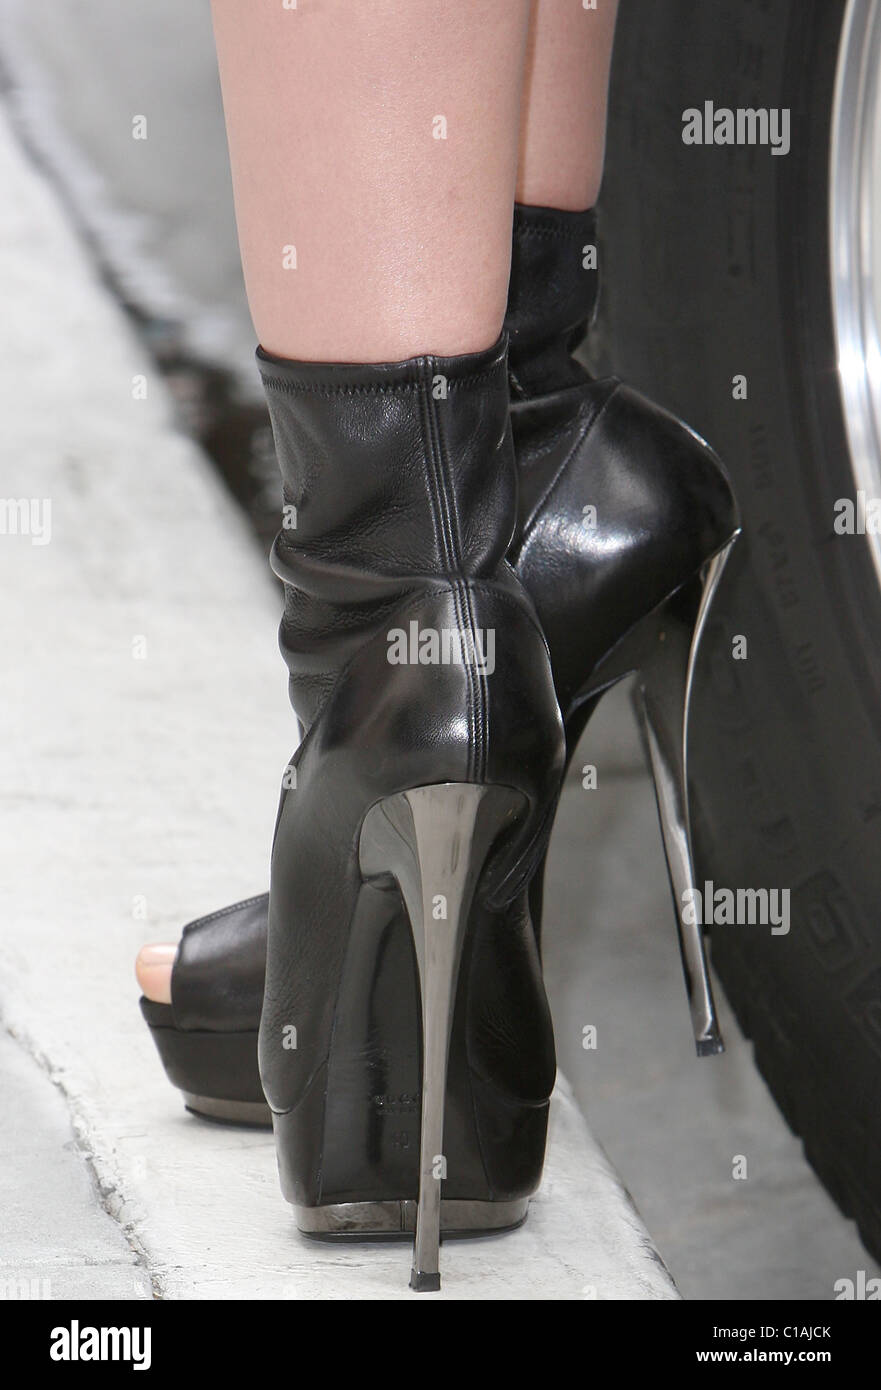 Black Leather Hot Pants Stock Photos Rodeo Ellie In Heidi Klum On The Set Of A Photo Shoot Drive Wearing